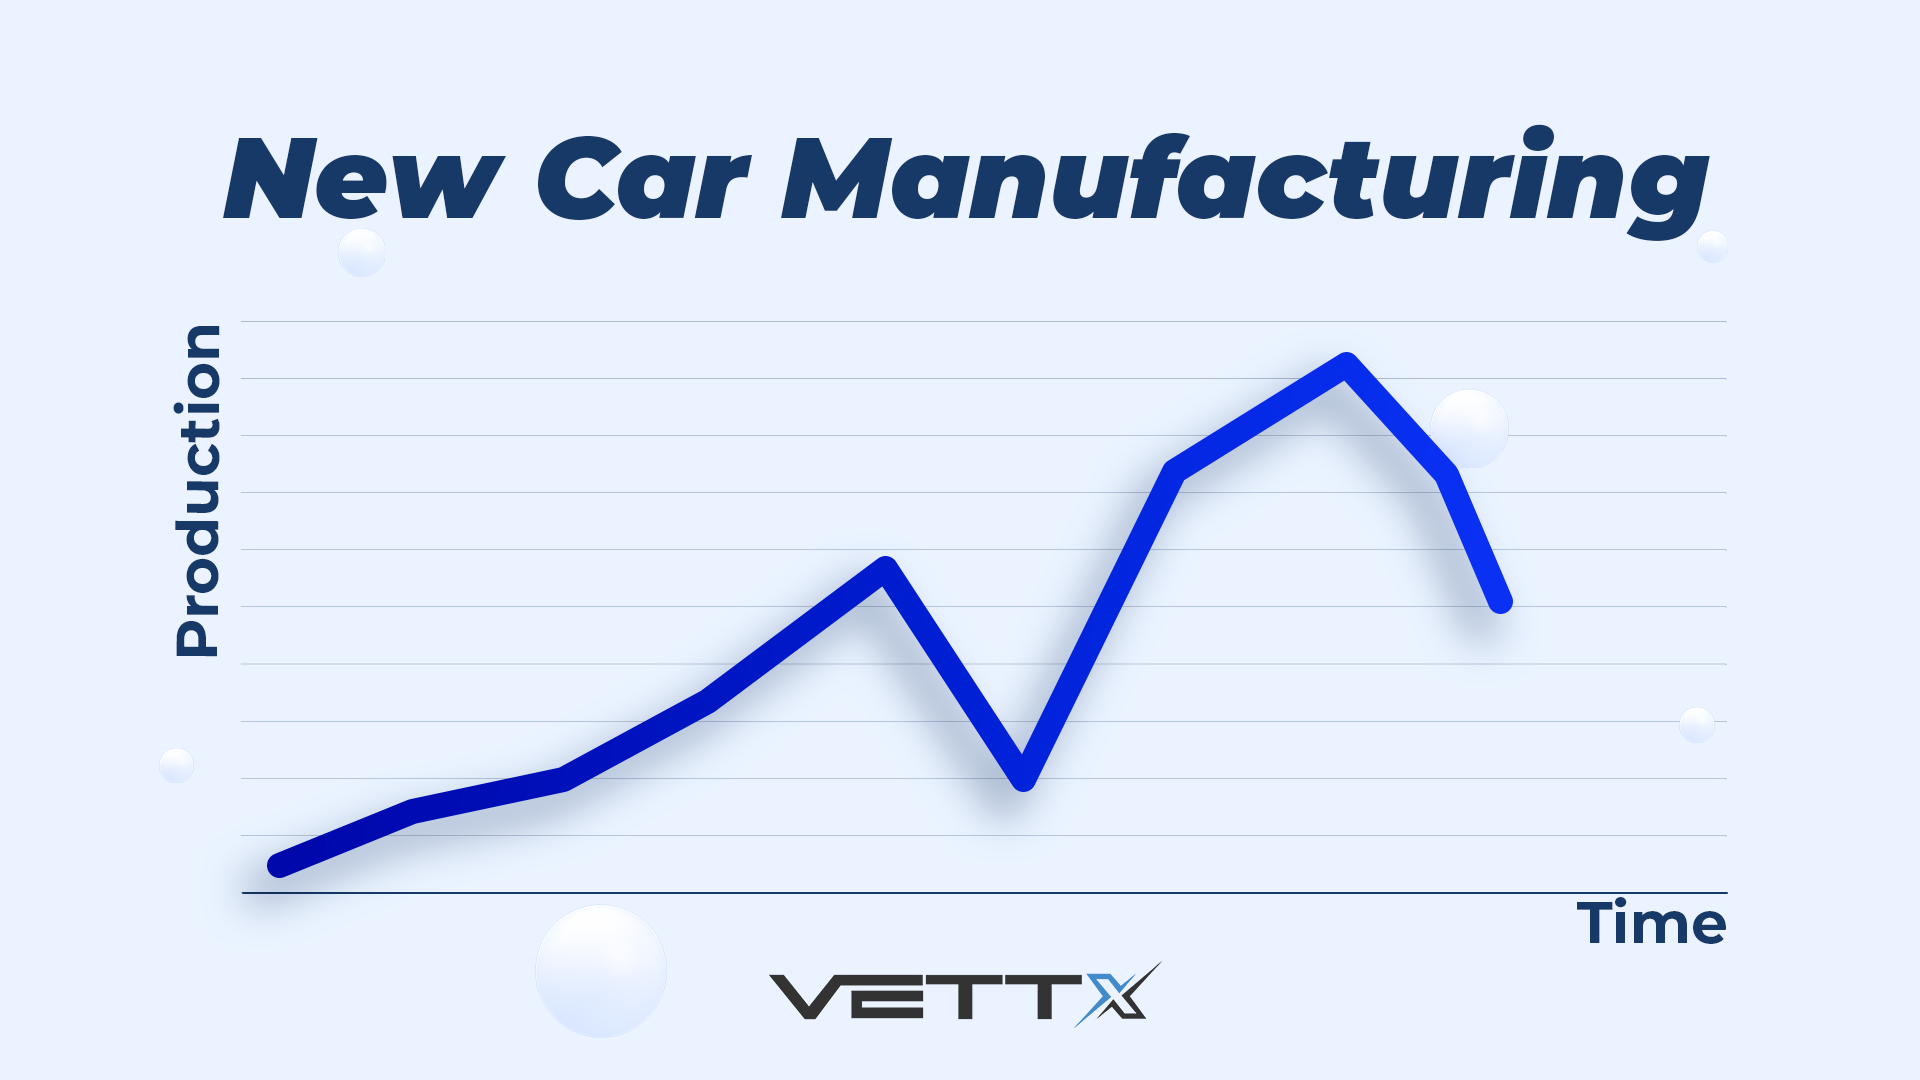 New Car Manufacturing